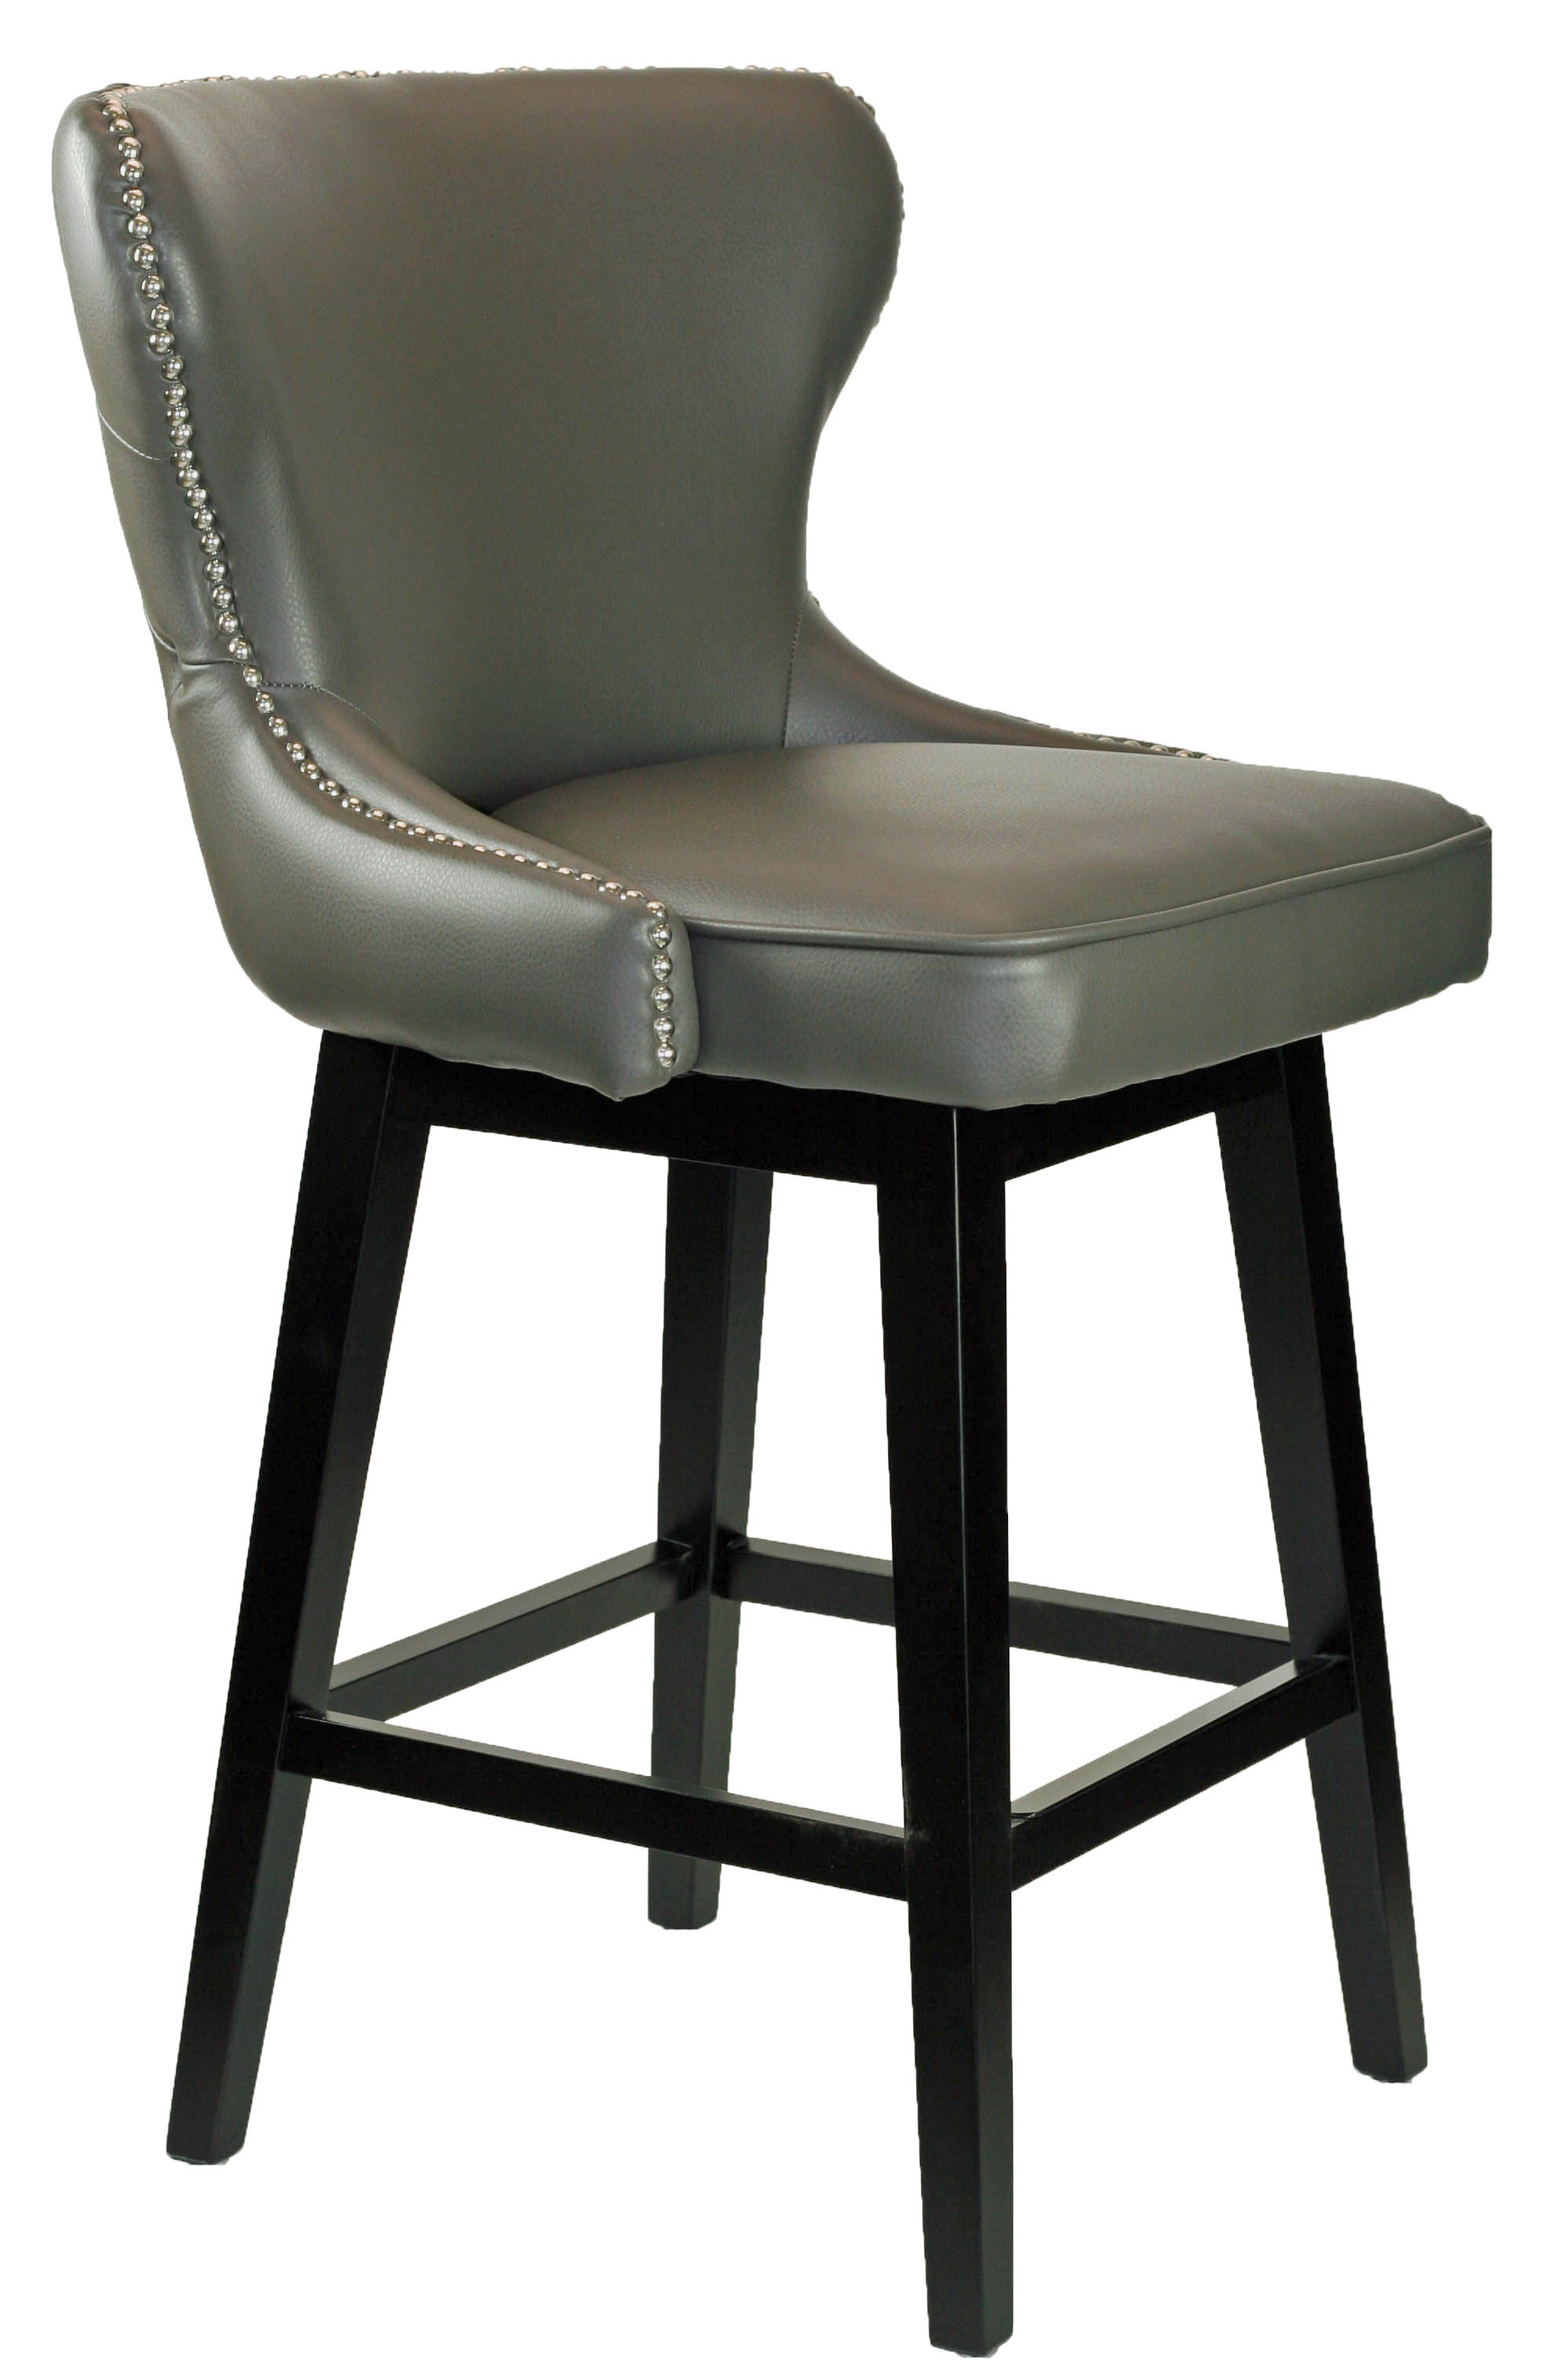 Stools Bar Stools Grey Leather Swivel Counter Stool